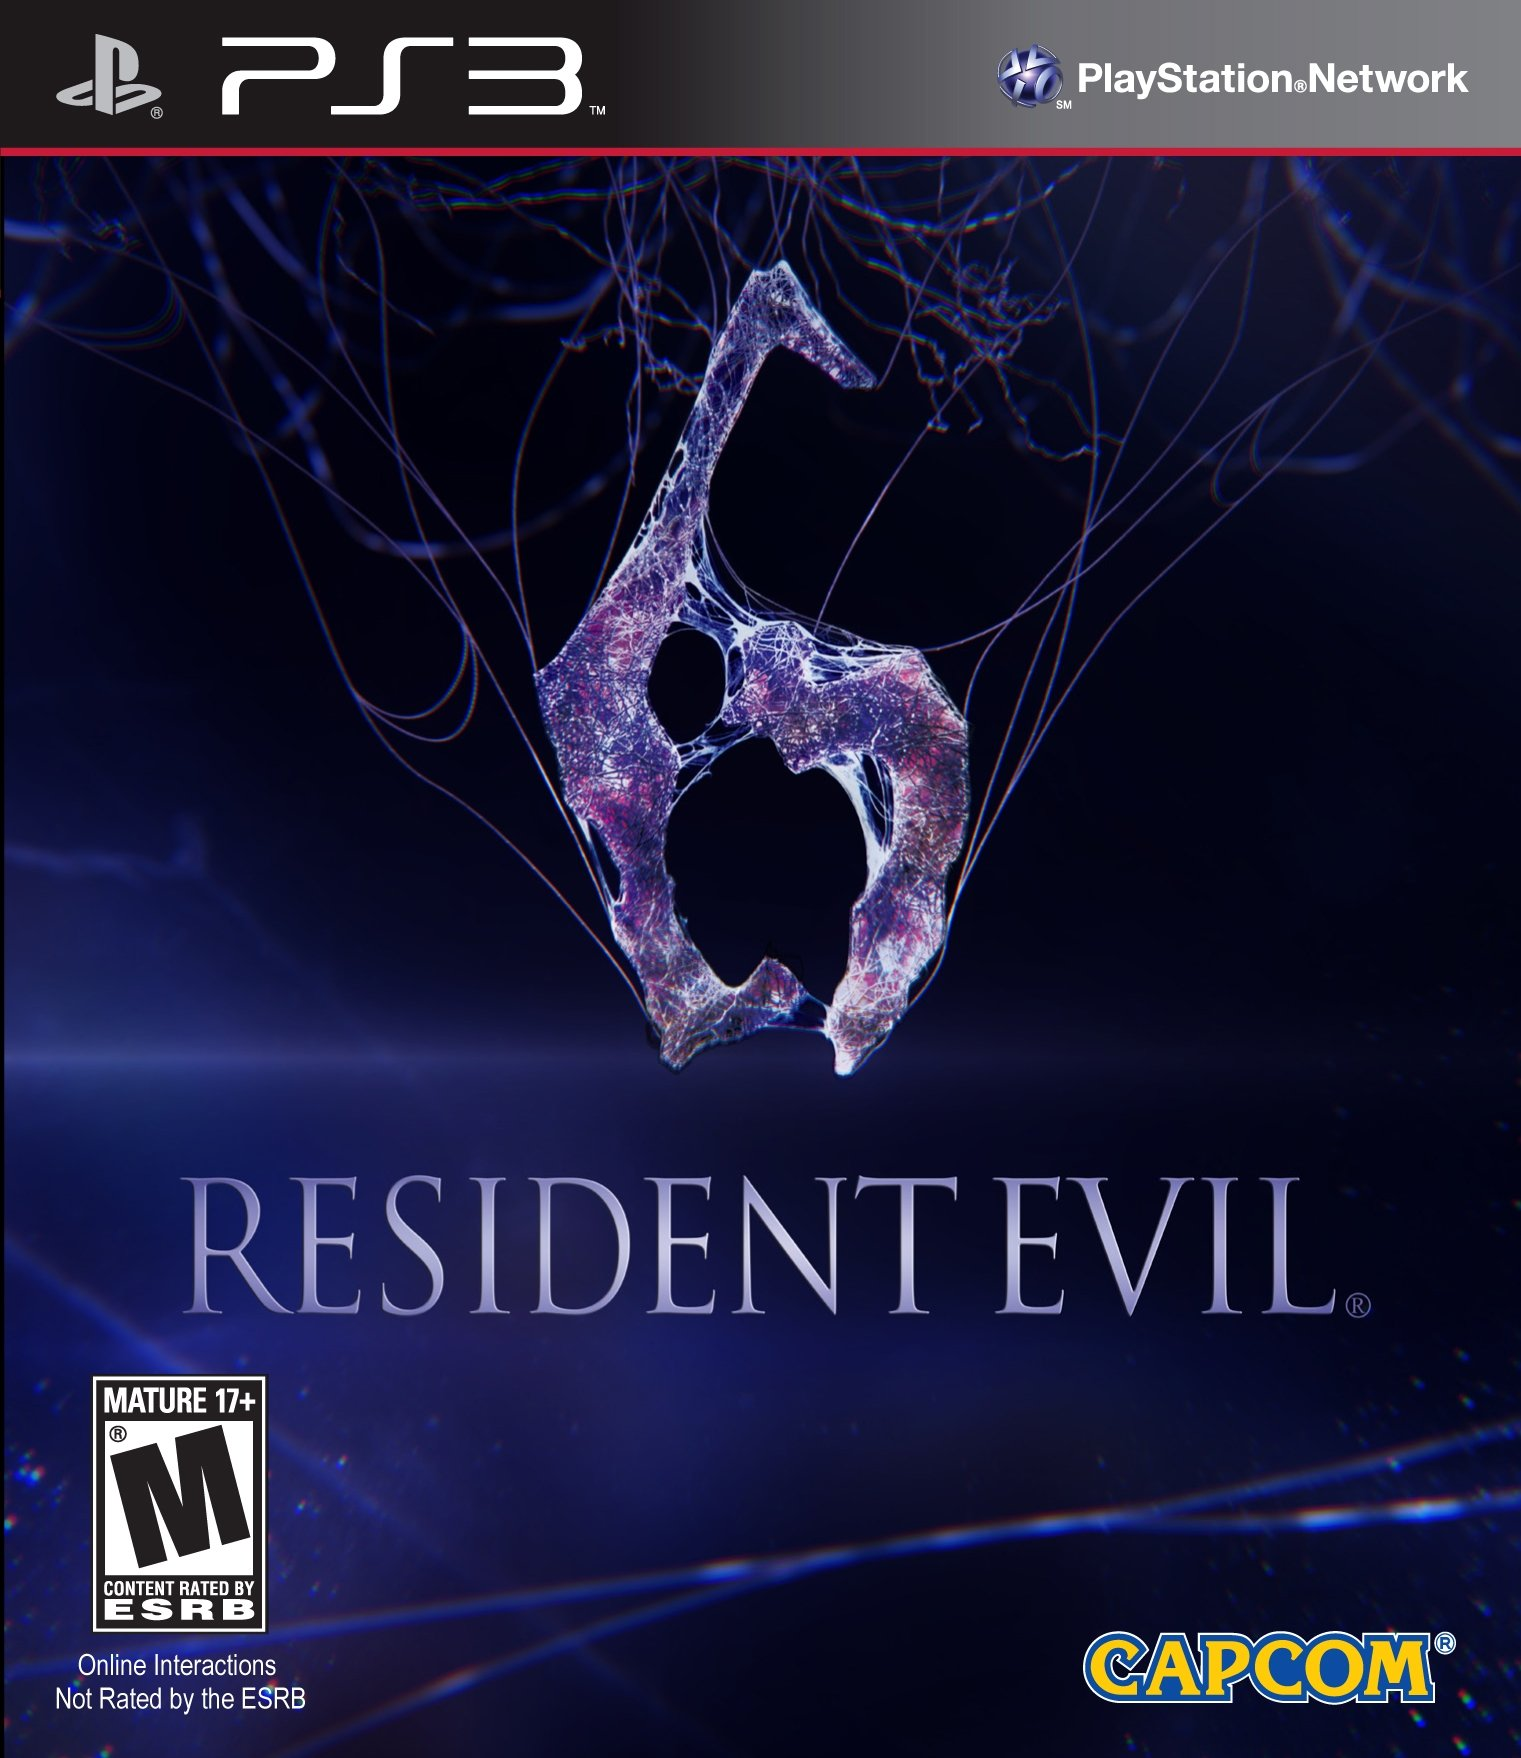 Resident Evil 6 Video Game Back Title by WonderClub